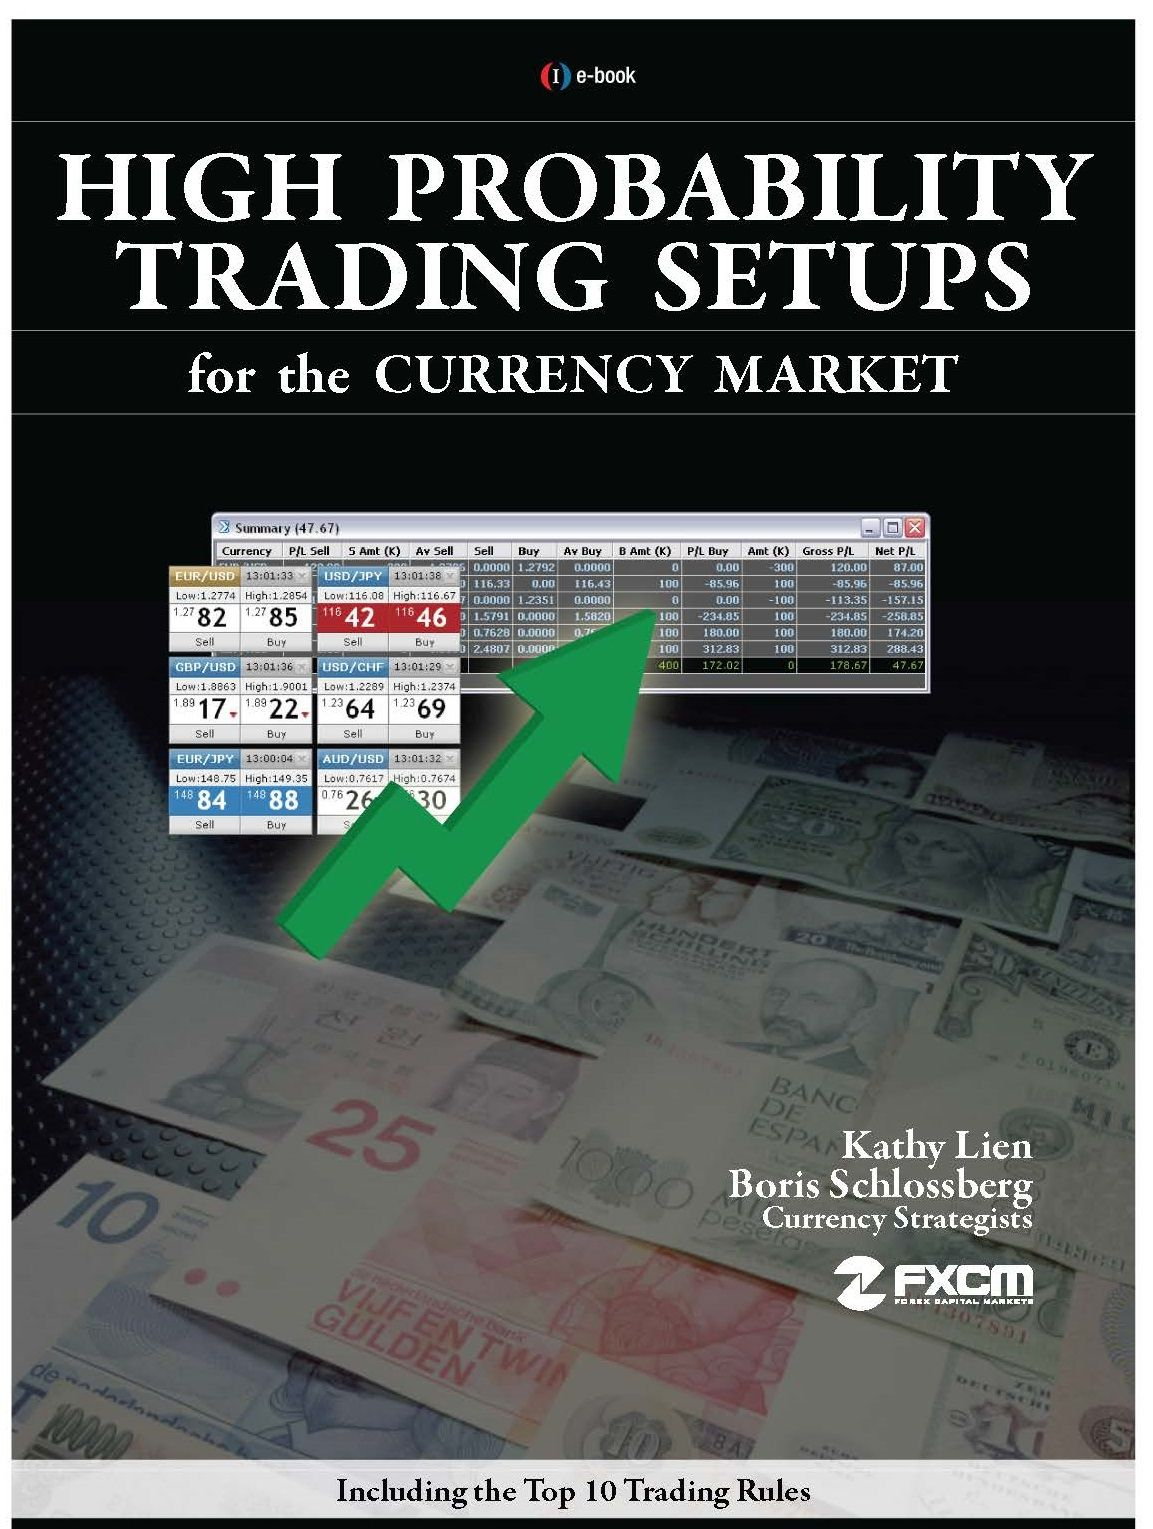 High Probability Trading Setups For The Currency Market By Kathy Lien Boris Schrolossberg This Book Is Designed To Help You Develop A